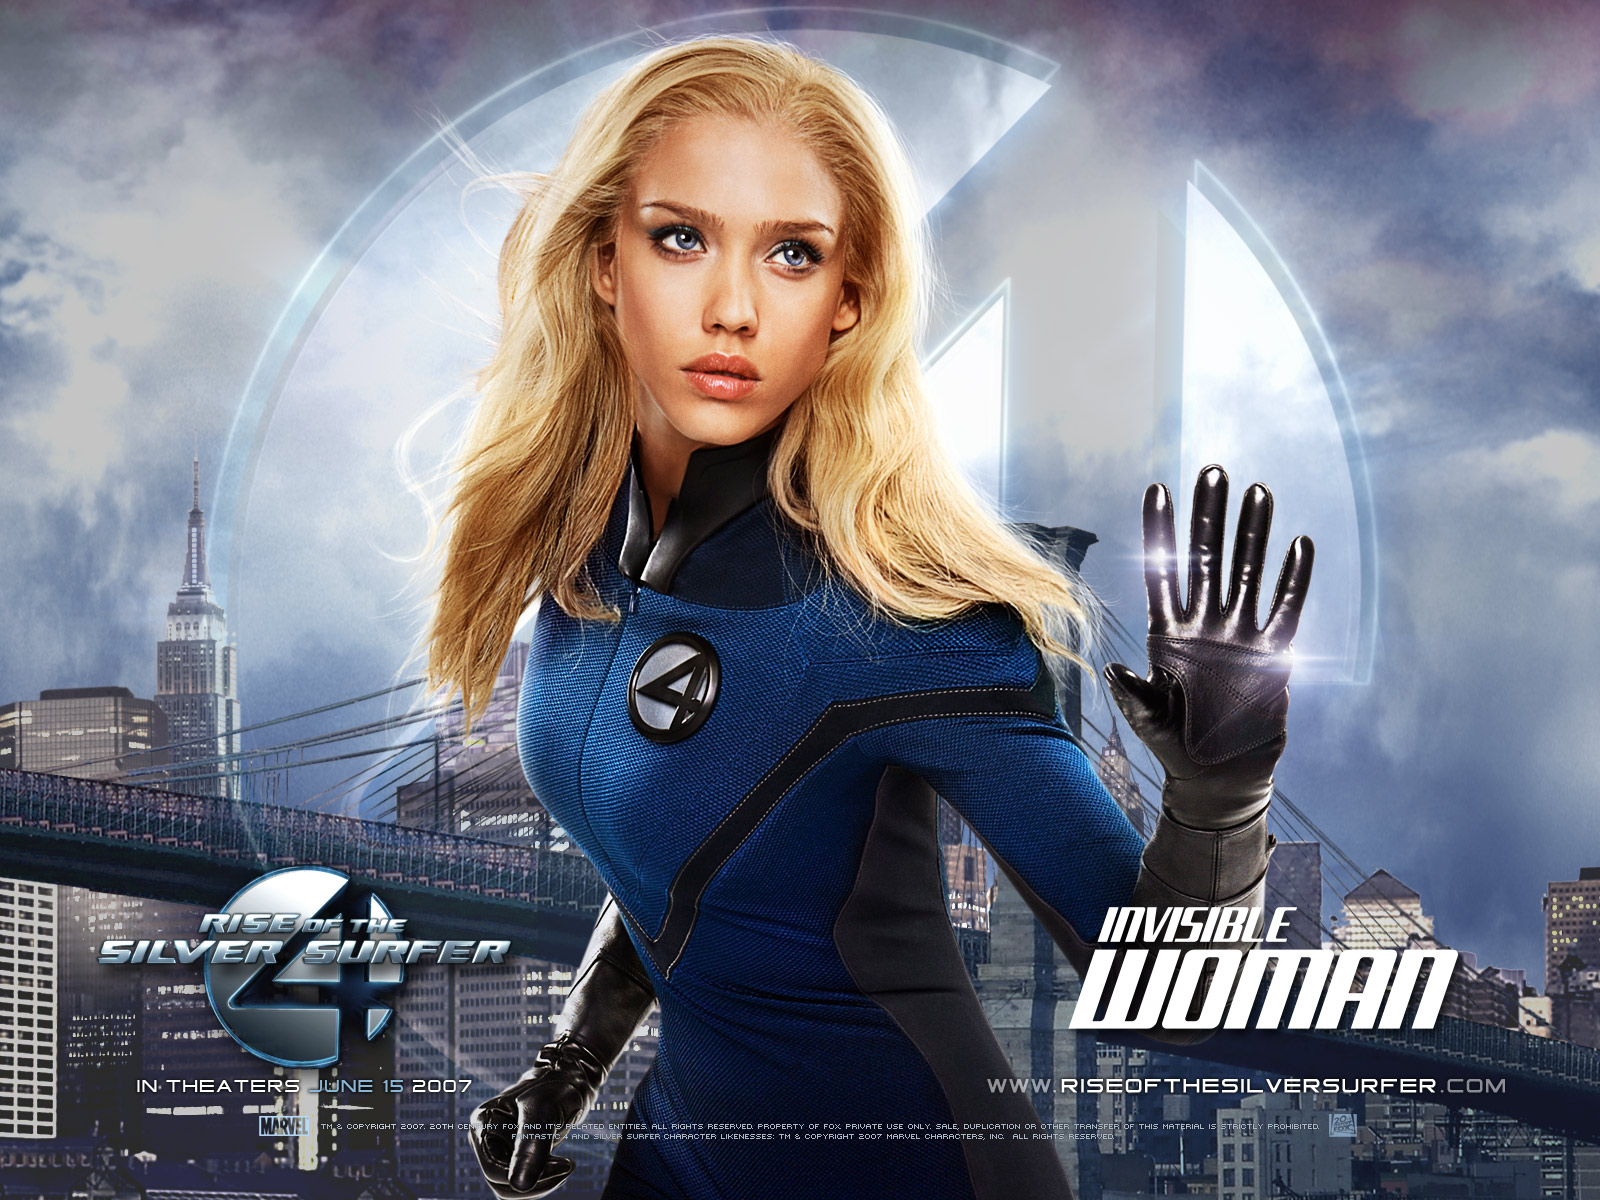 http://2.bp.blogspot.com/_c4mMOPZAbC8/S-it8EDT5TI/AAAAAAAACLc/BYT8fDztwi8/s1600/Jessica_Alba_in_Fantastic_Four-_Rise_of_the_Silver_Surfer_Wallpaper_3_1280.jpg